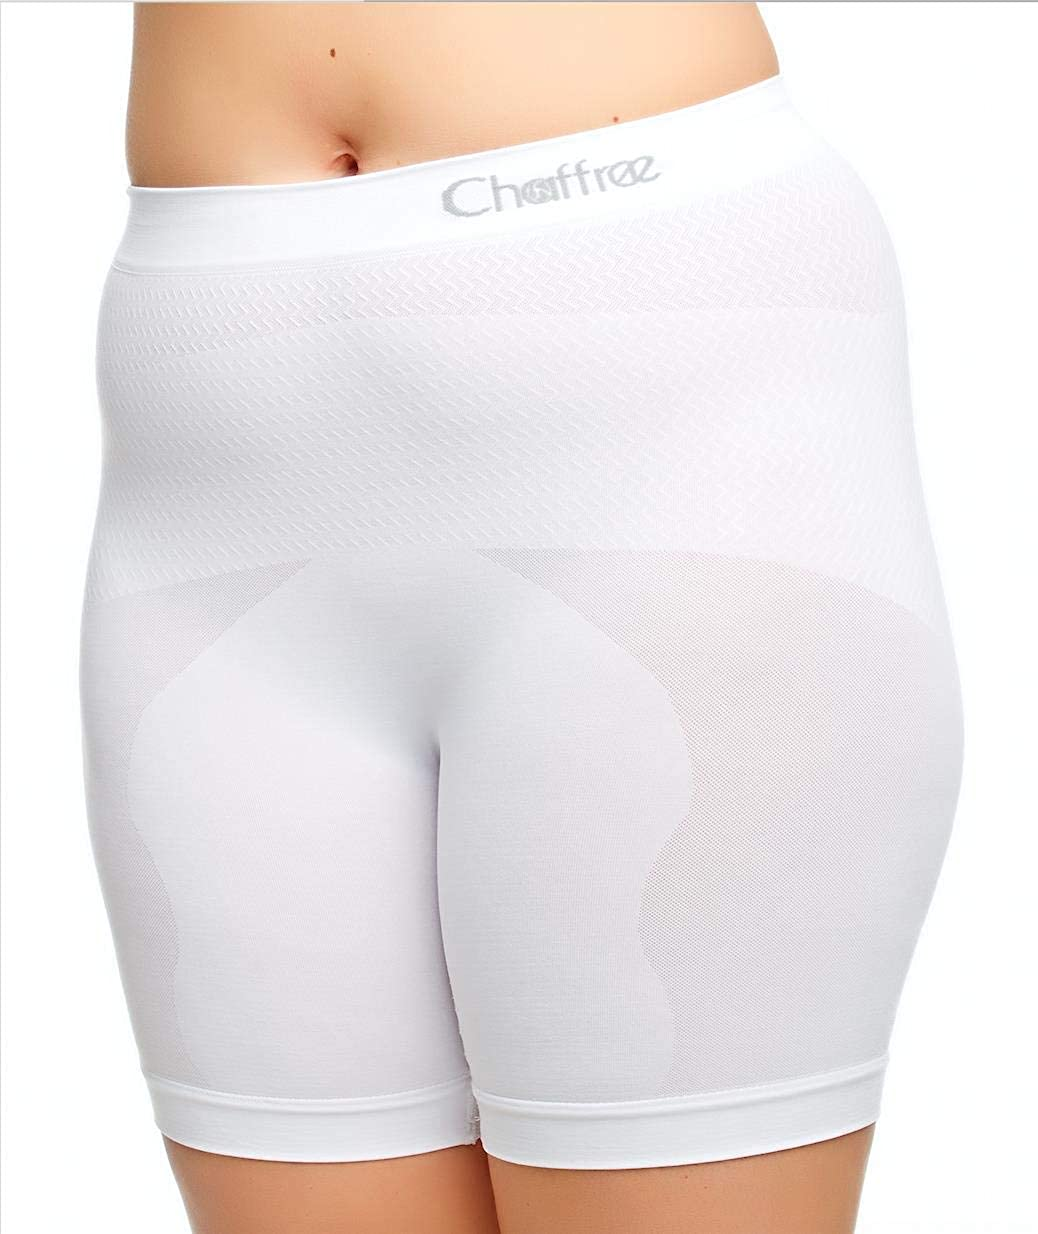 Chaffree Womens Anti Chafing Knickers, Plus Size Long Leg Briefs, Prevent Thigh Rubbing Underwear, Breathable Moisture Sweat Control Exercise Gym Brief, Stretchy Seamless Ladies Slipshort Panties, 1PK